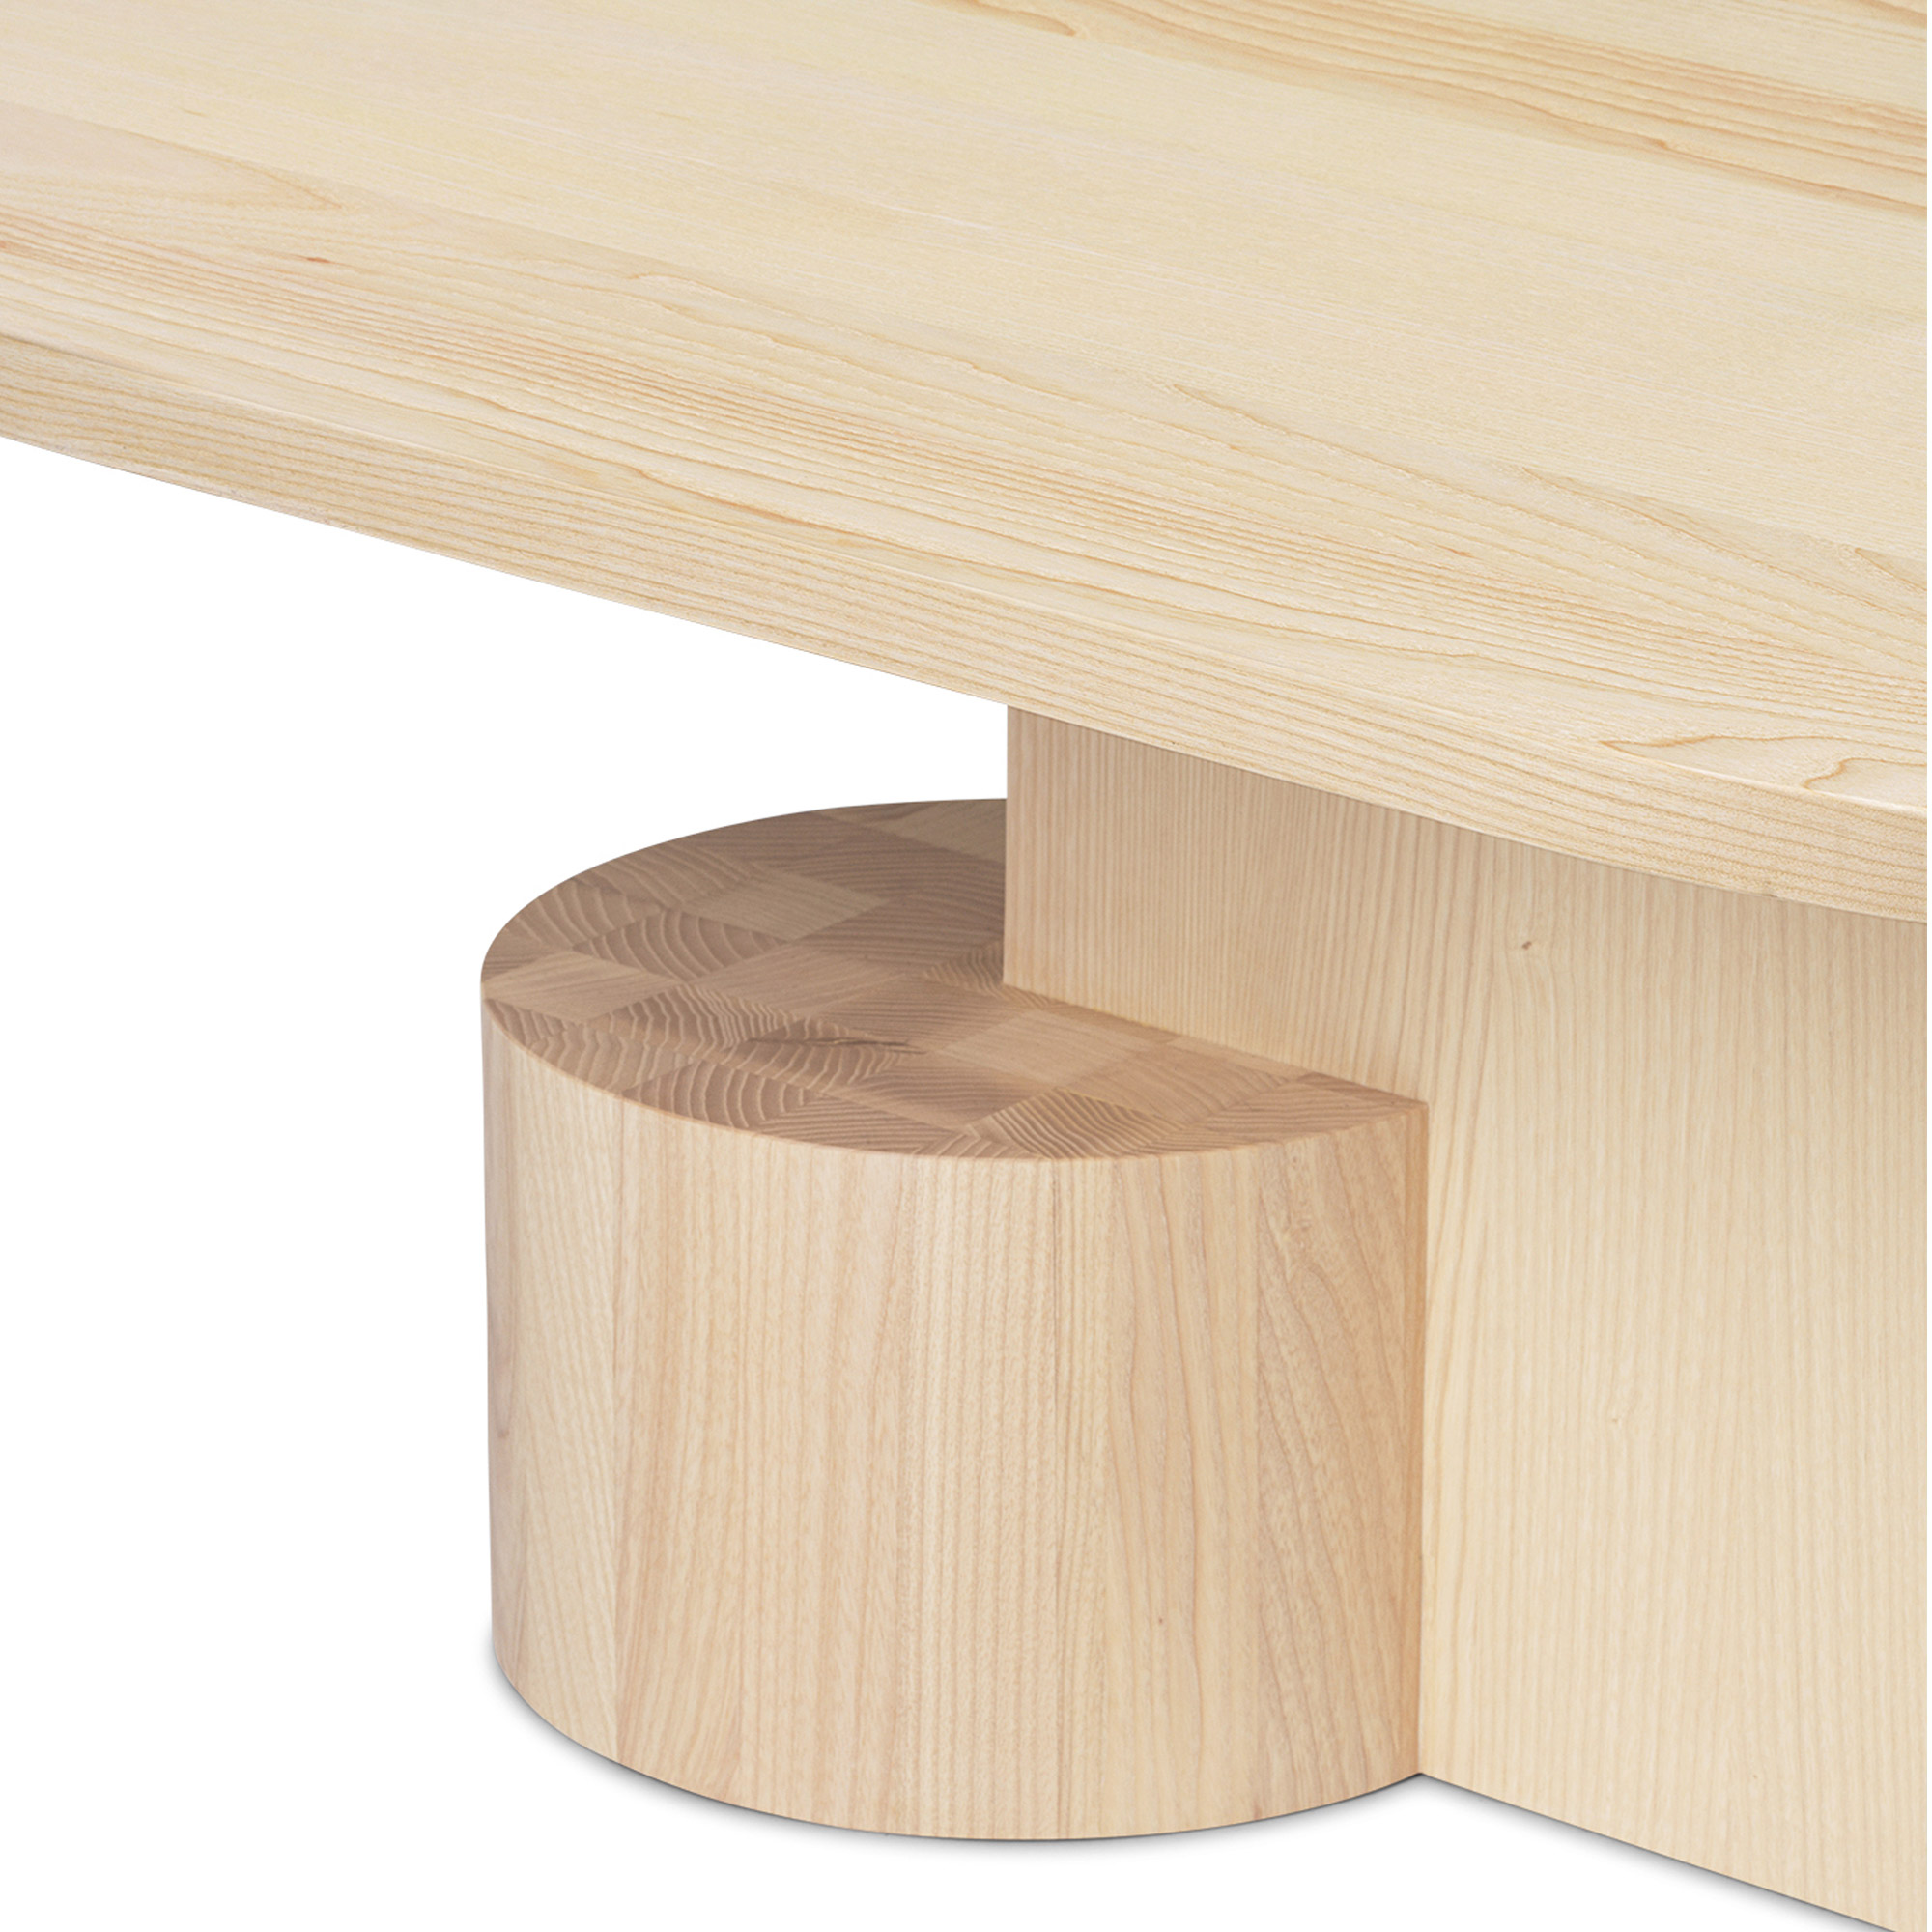 Insert Coffee Table Natural Soffbord | Ferm Living | Länna